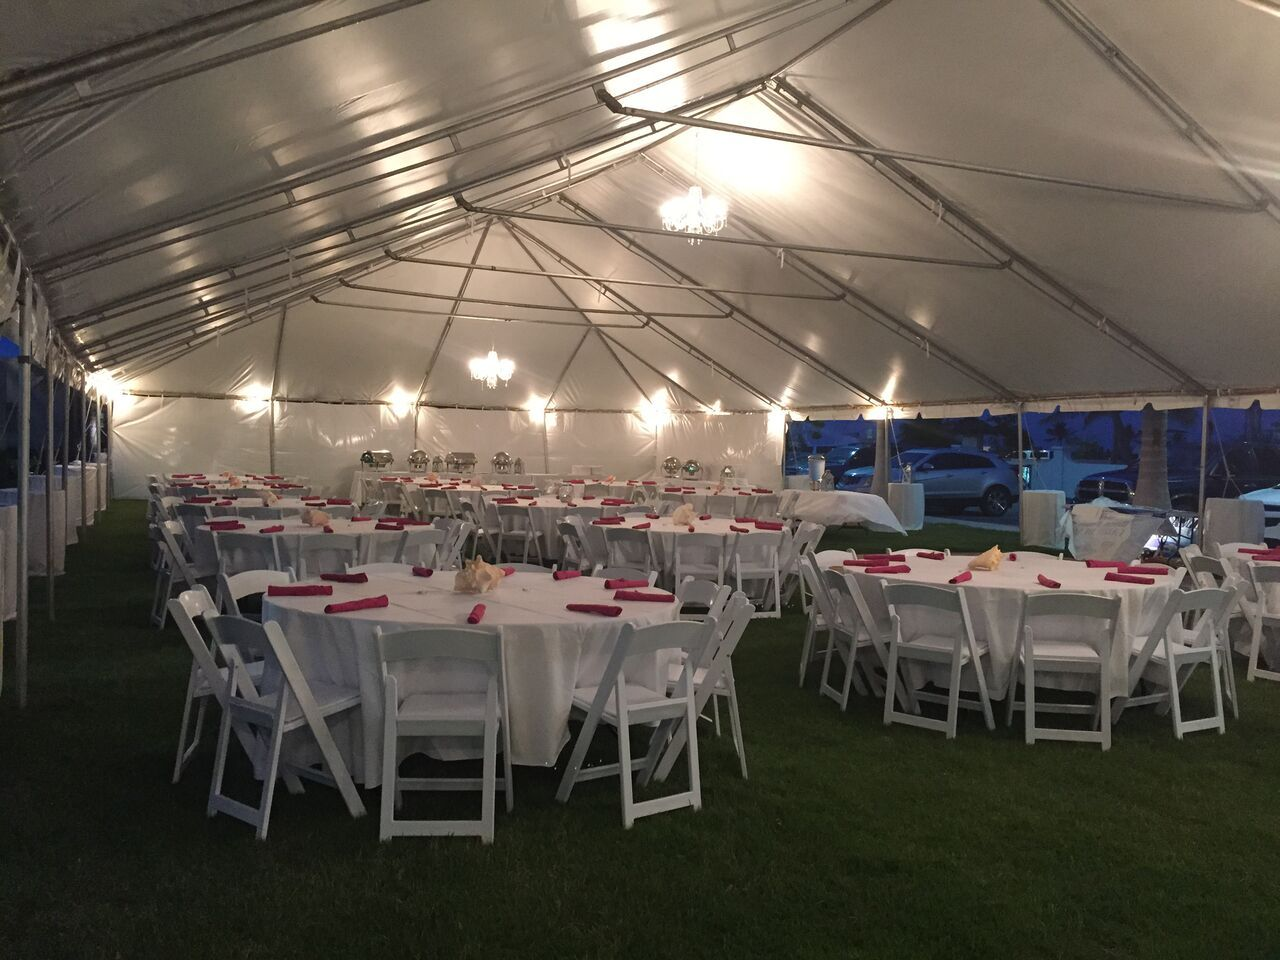 Chandelier lighting under the tent on the Parish Event